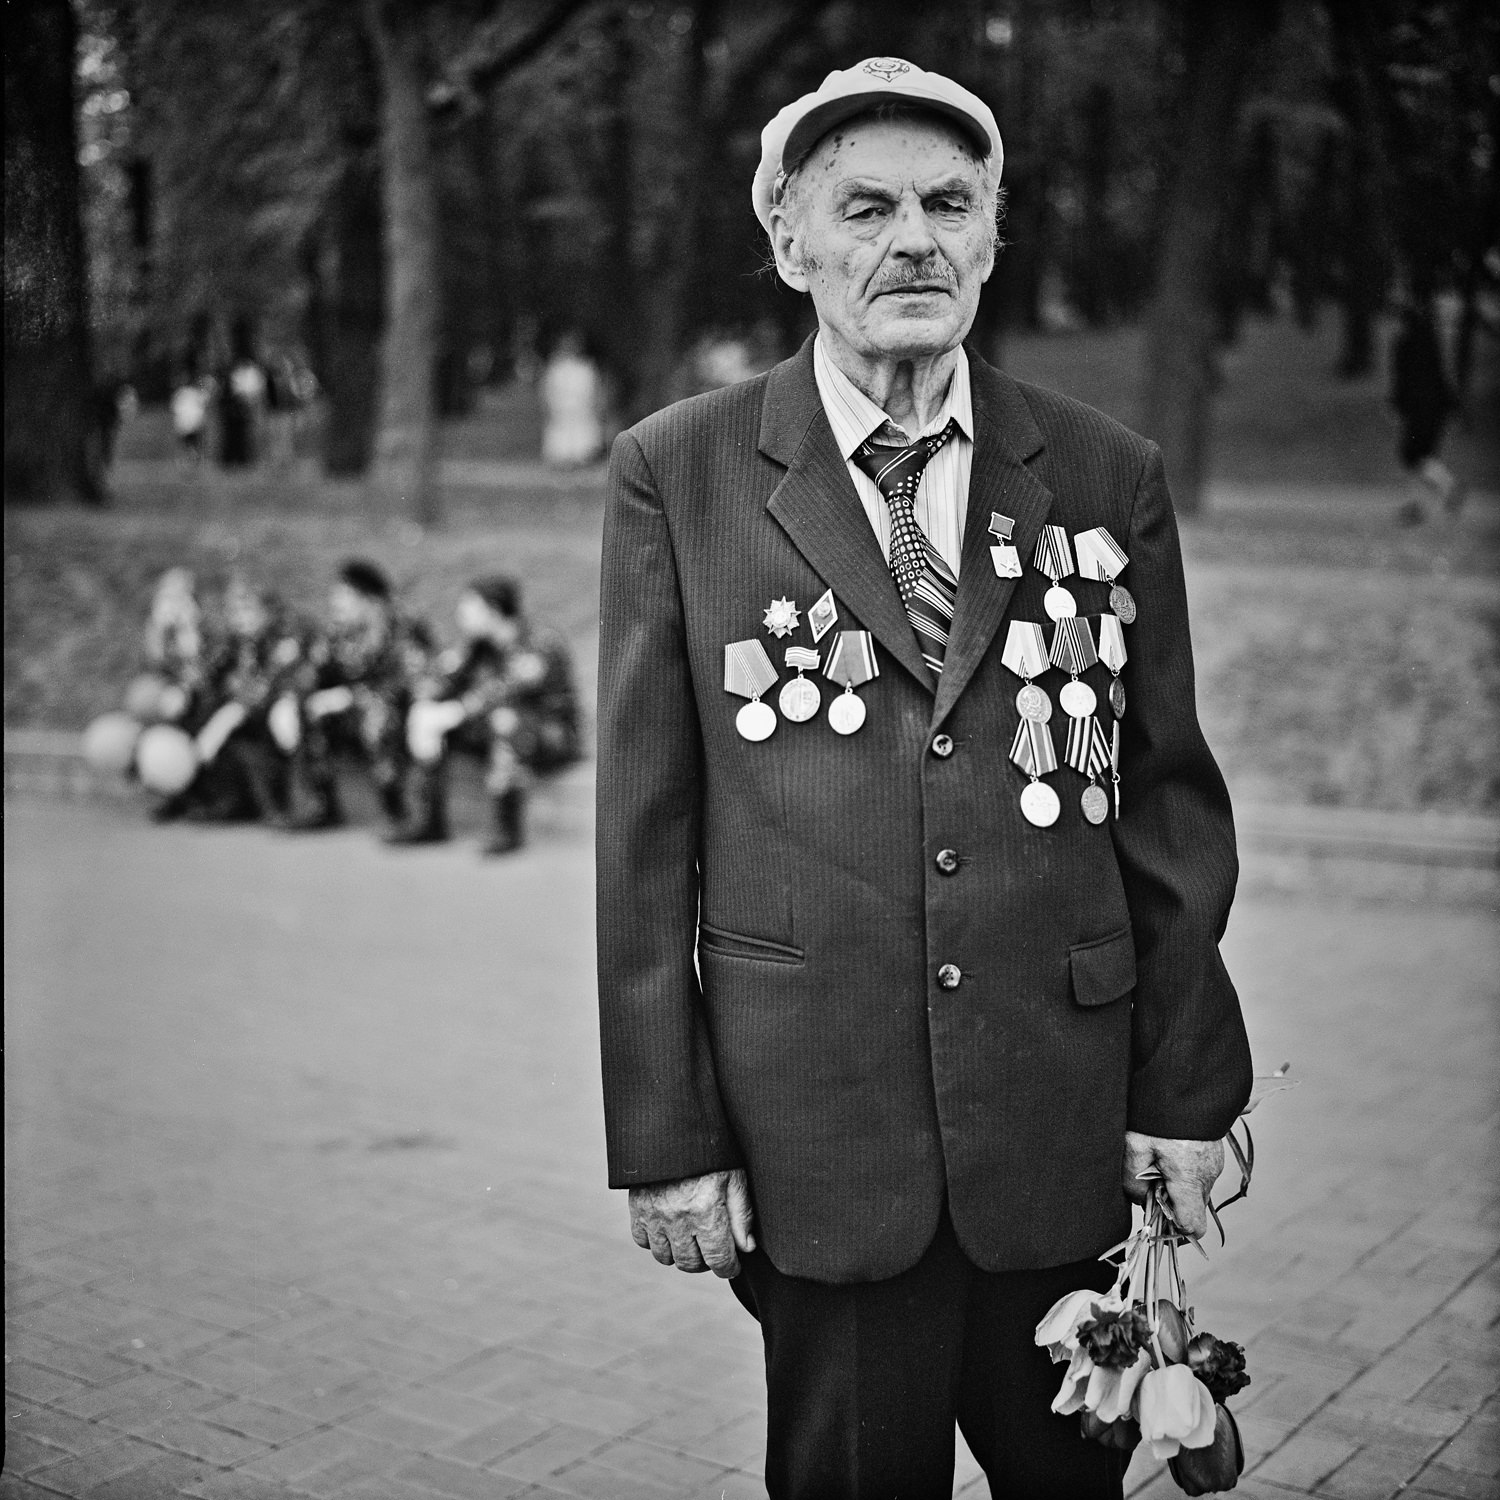 Documentary portrait of veteran of WW II with flowers in hand standed in Minsk park taken on black-and-white film and medium format camera